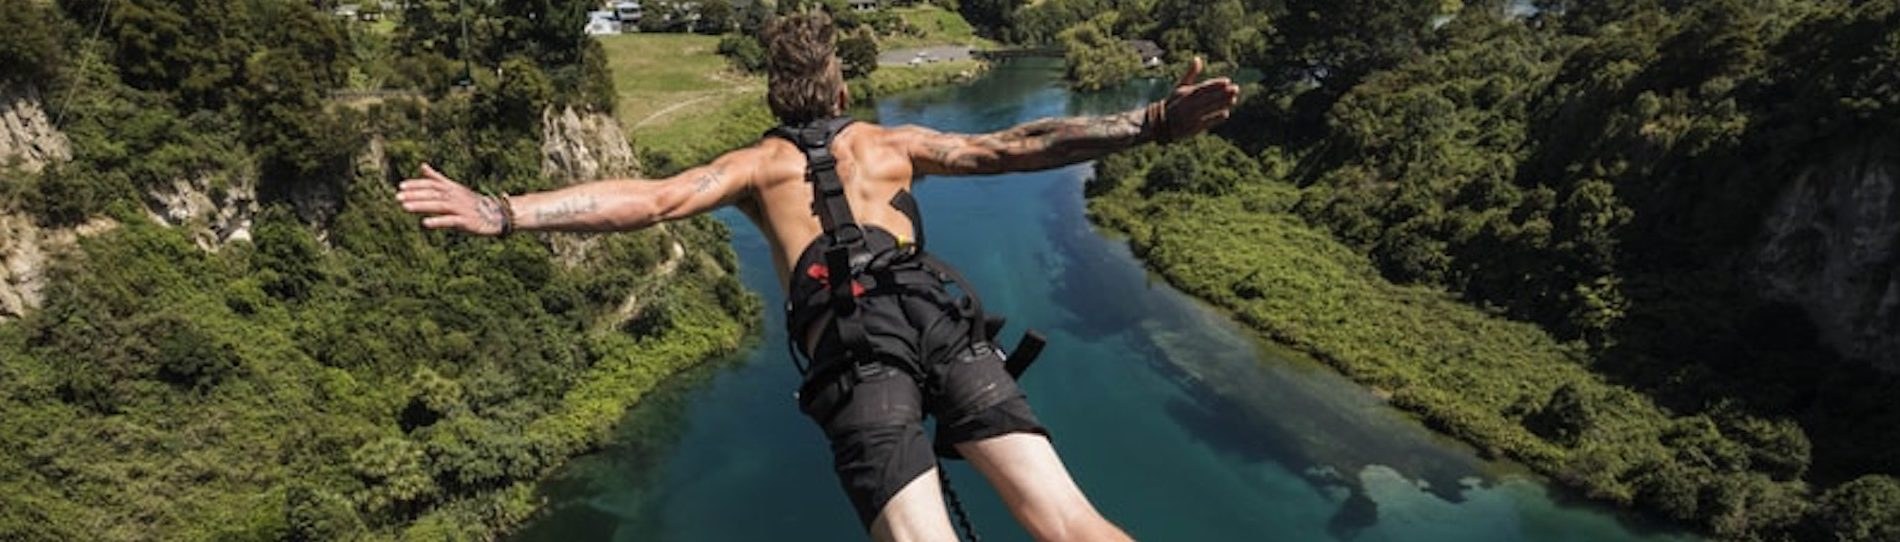 bungy jumping taupo